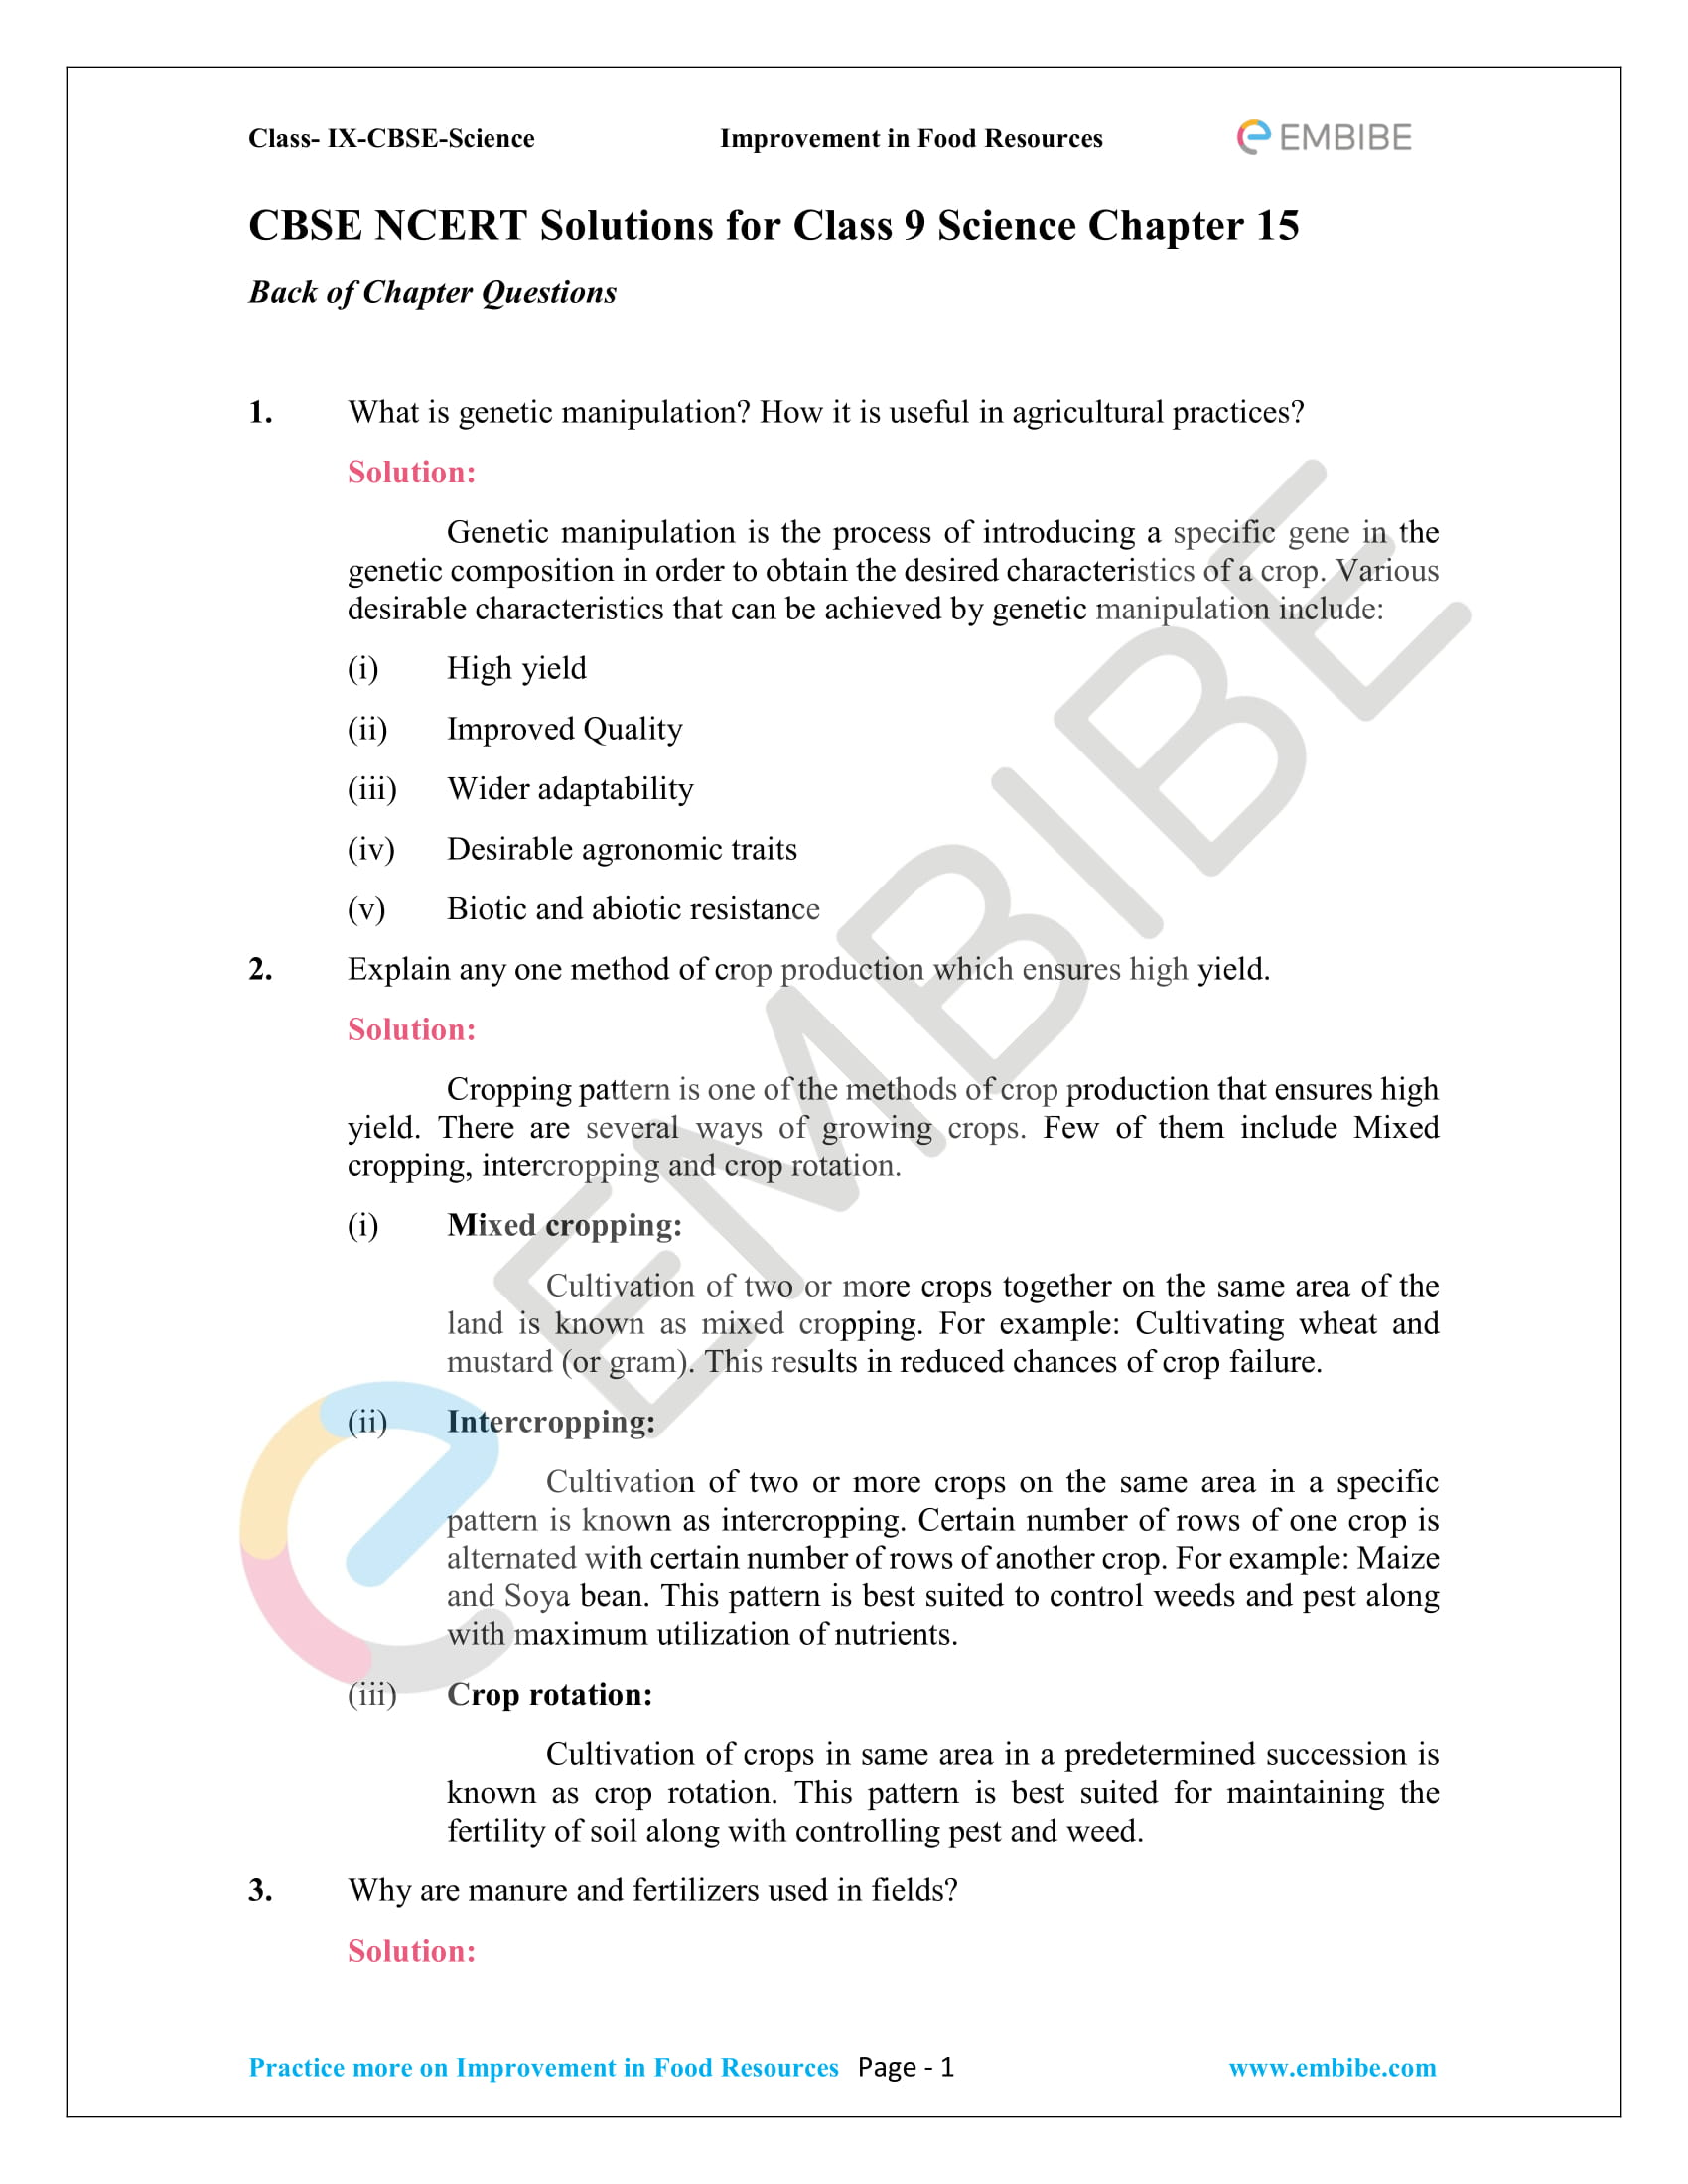 CBSE NCERT Solutions for Class 9 Science Chapter 15-1